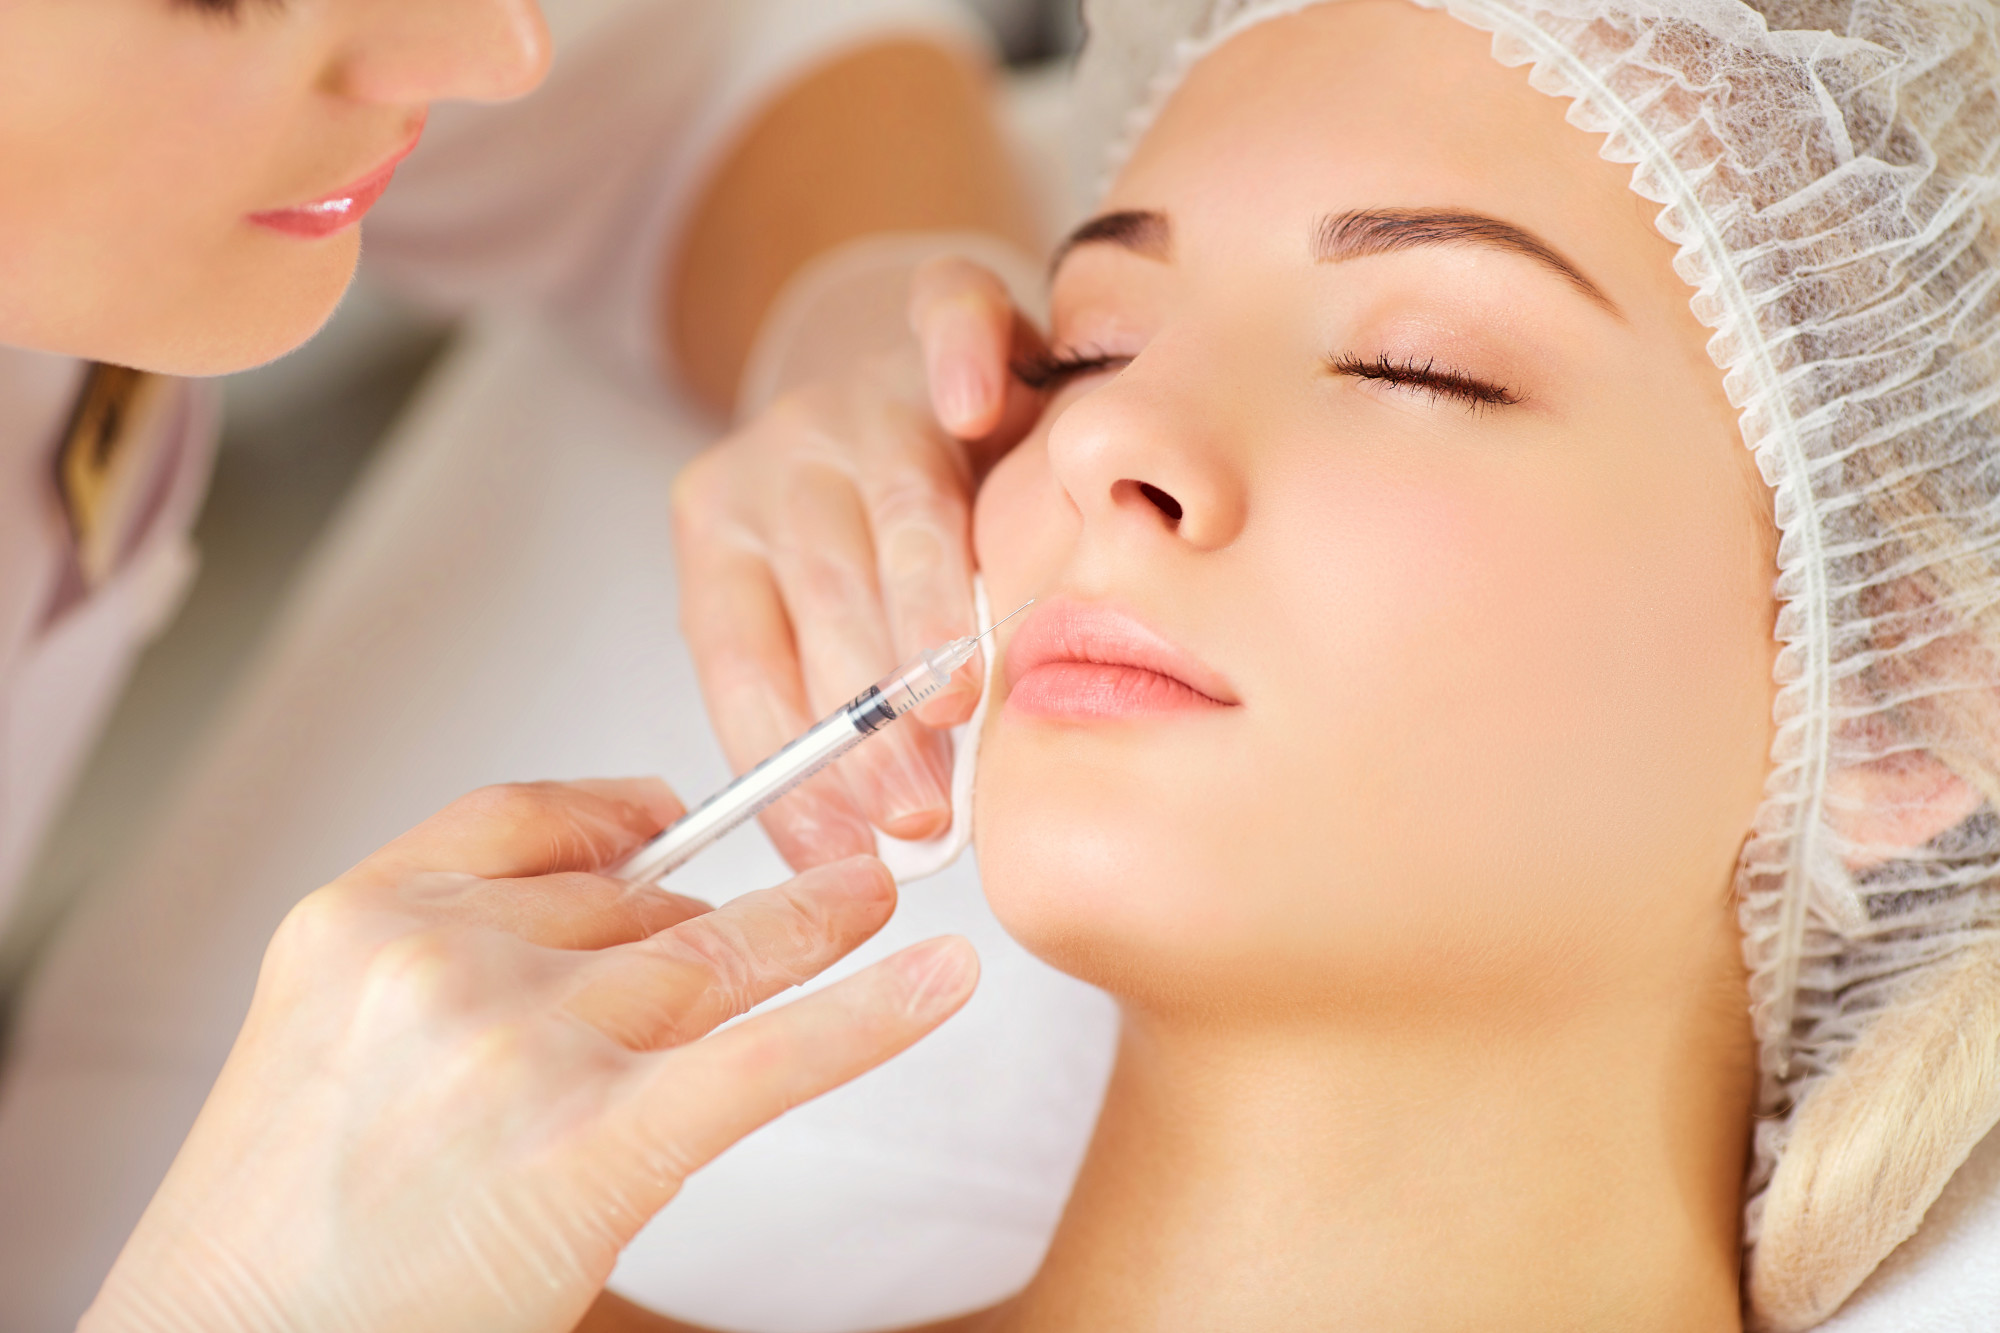 Safety First: 7 Things to Consider When Choosing a Botox Clinic